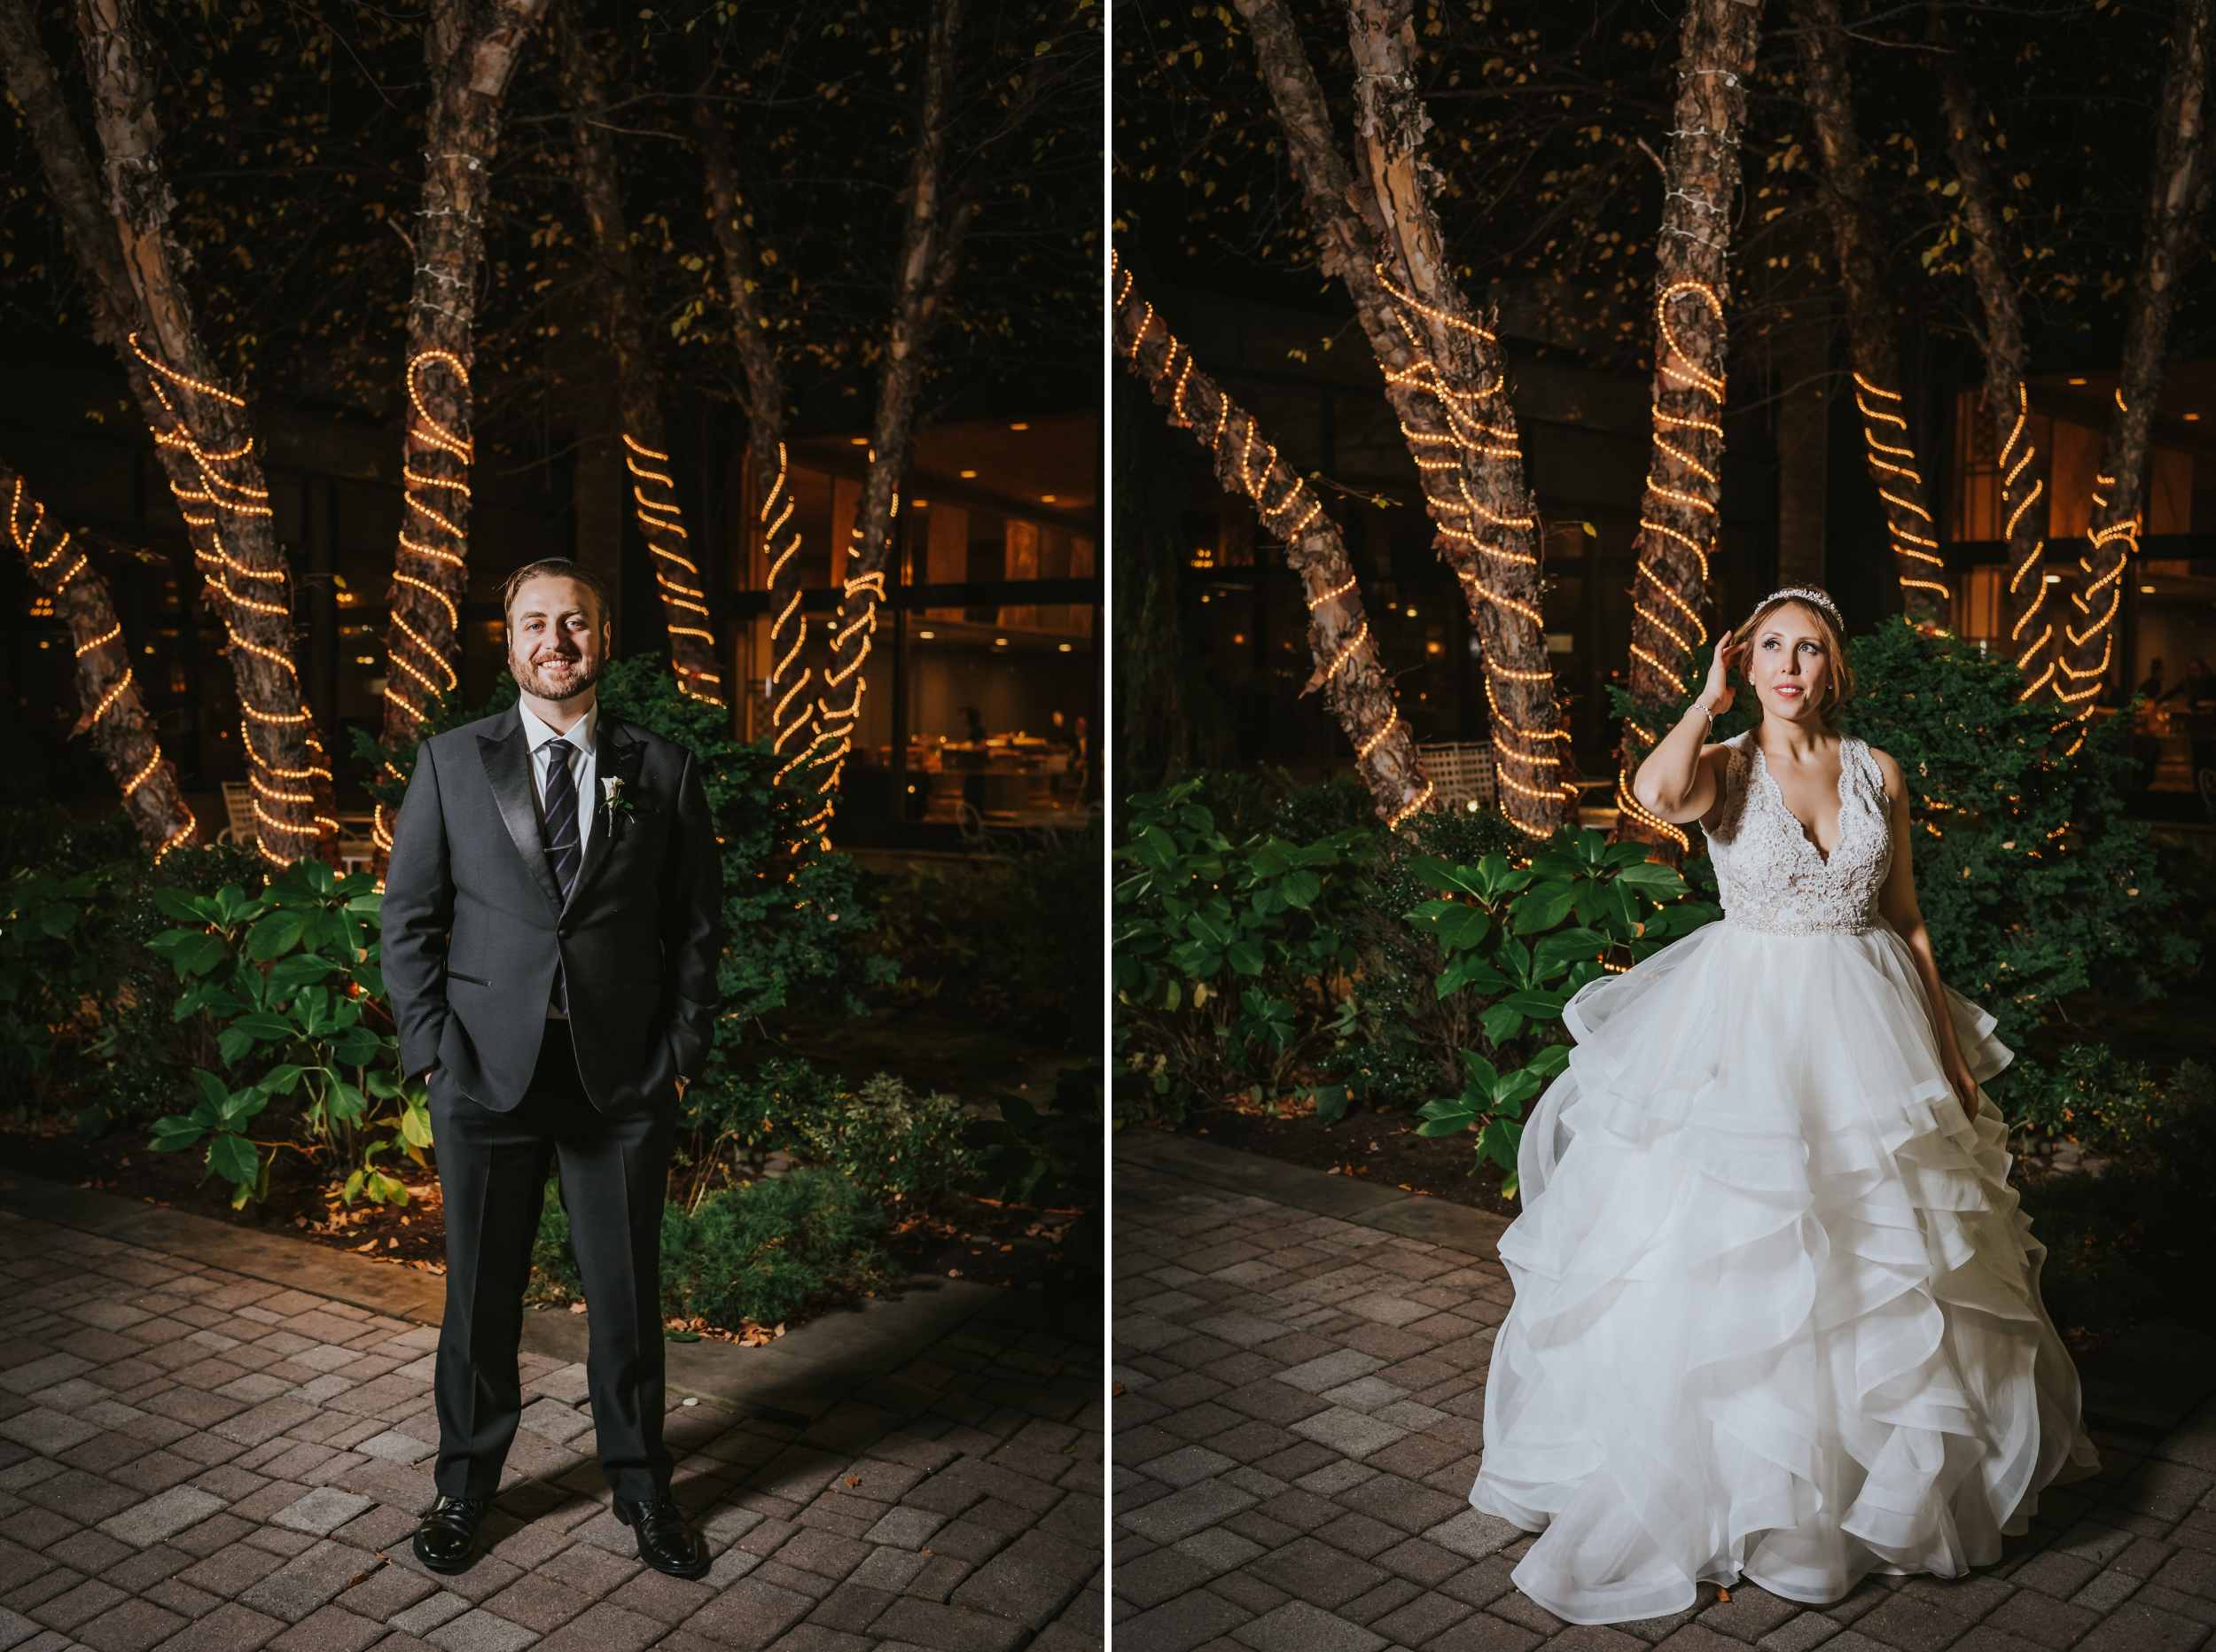 Ilyse and Max - The Sephardic Temple of Cedarhurst Wedding Long Island NYC 097.jpg